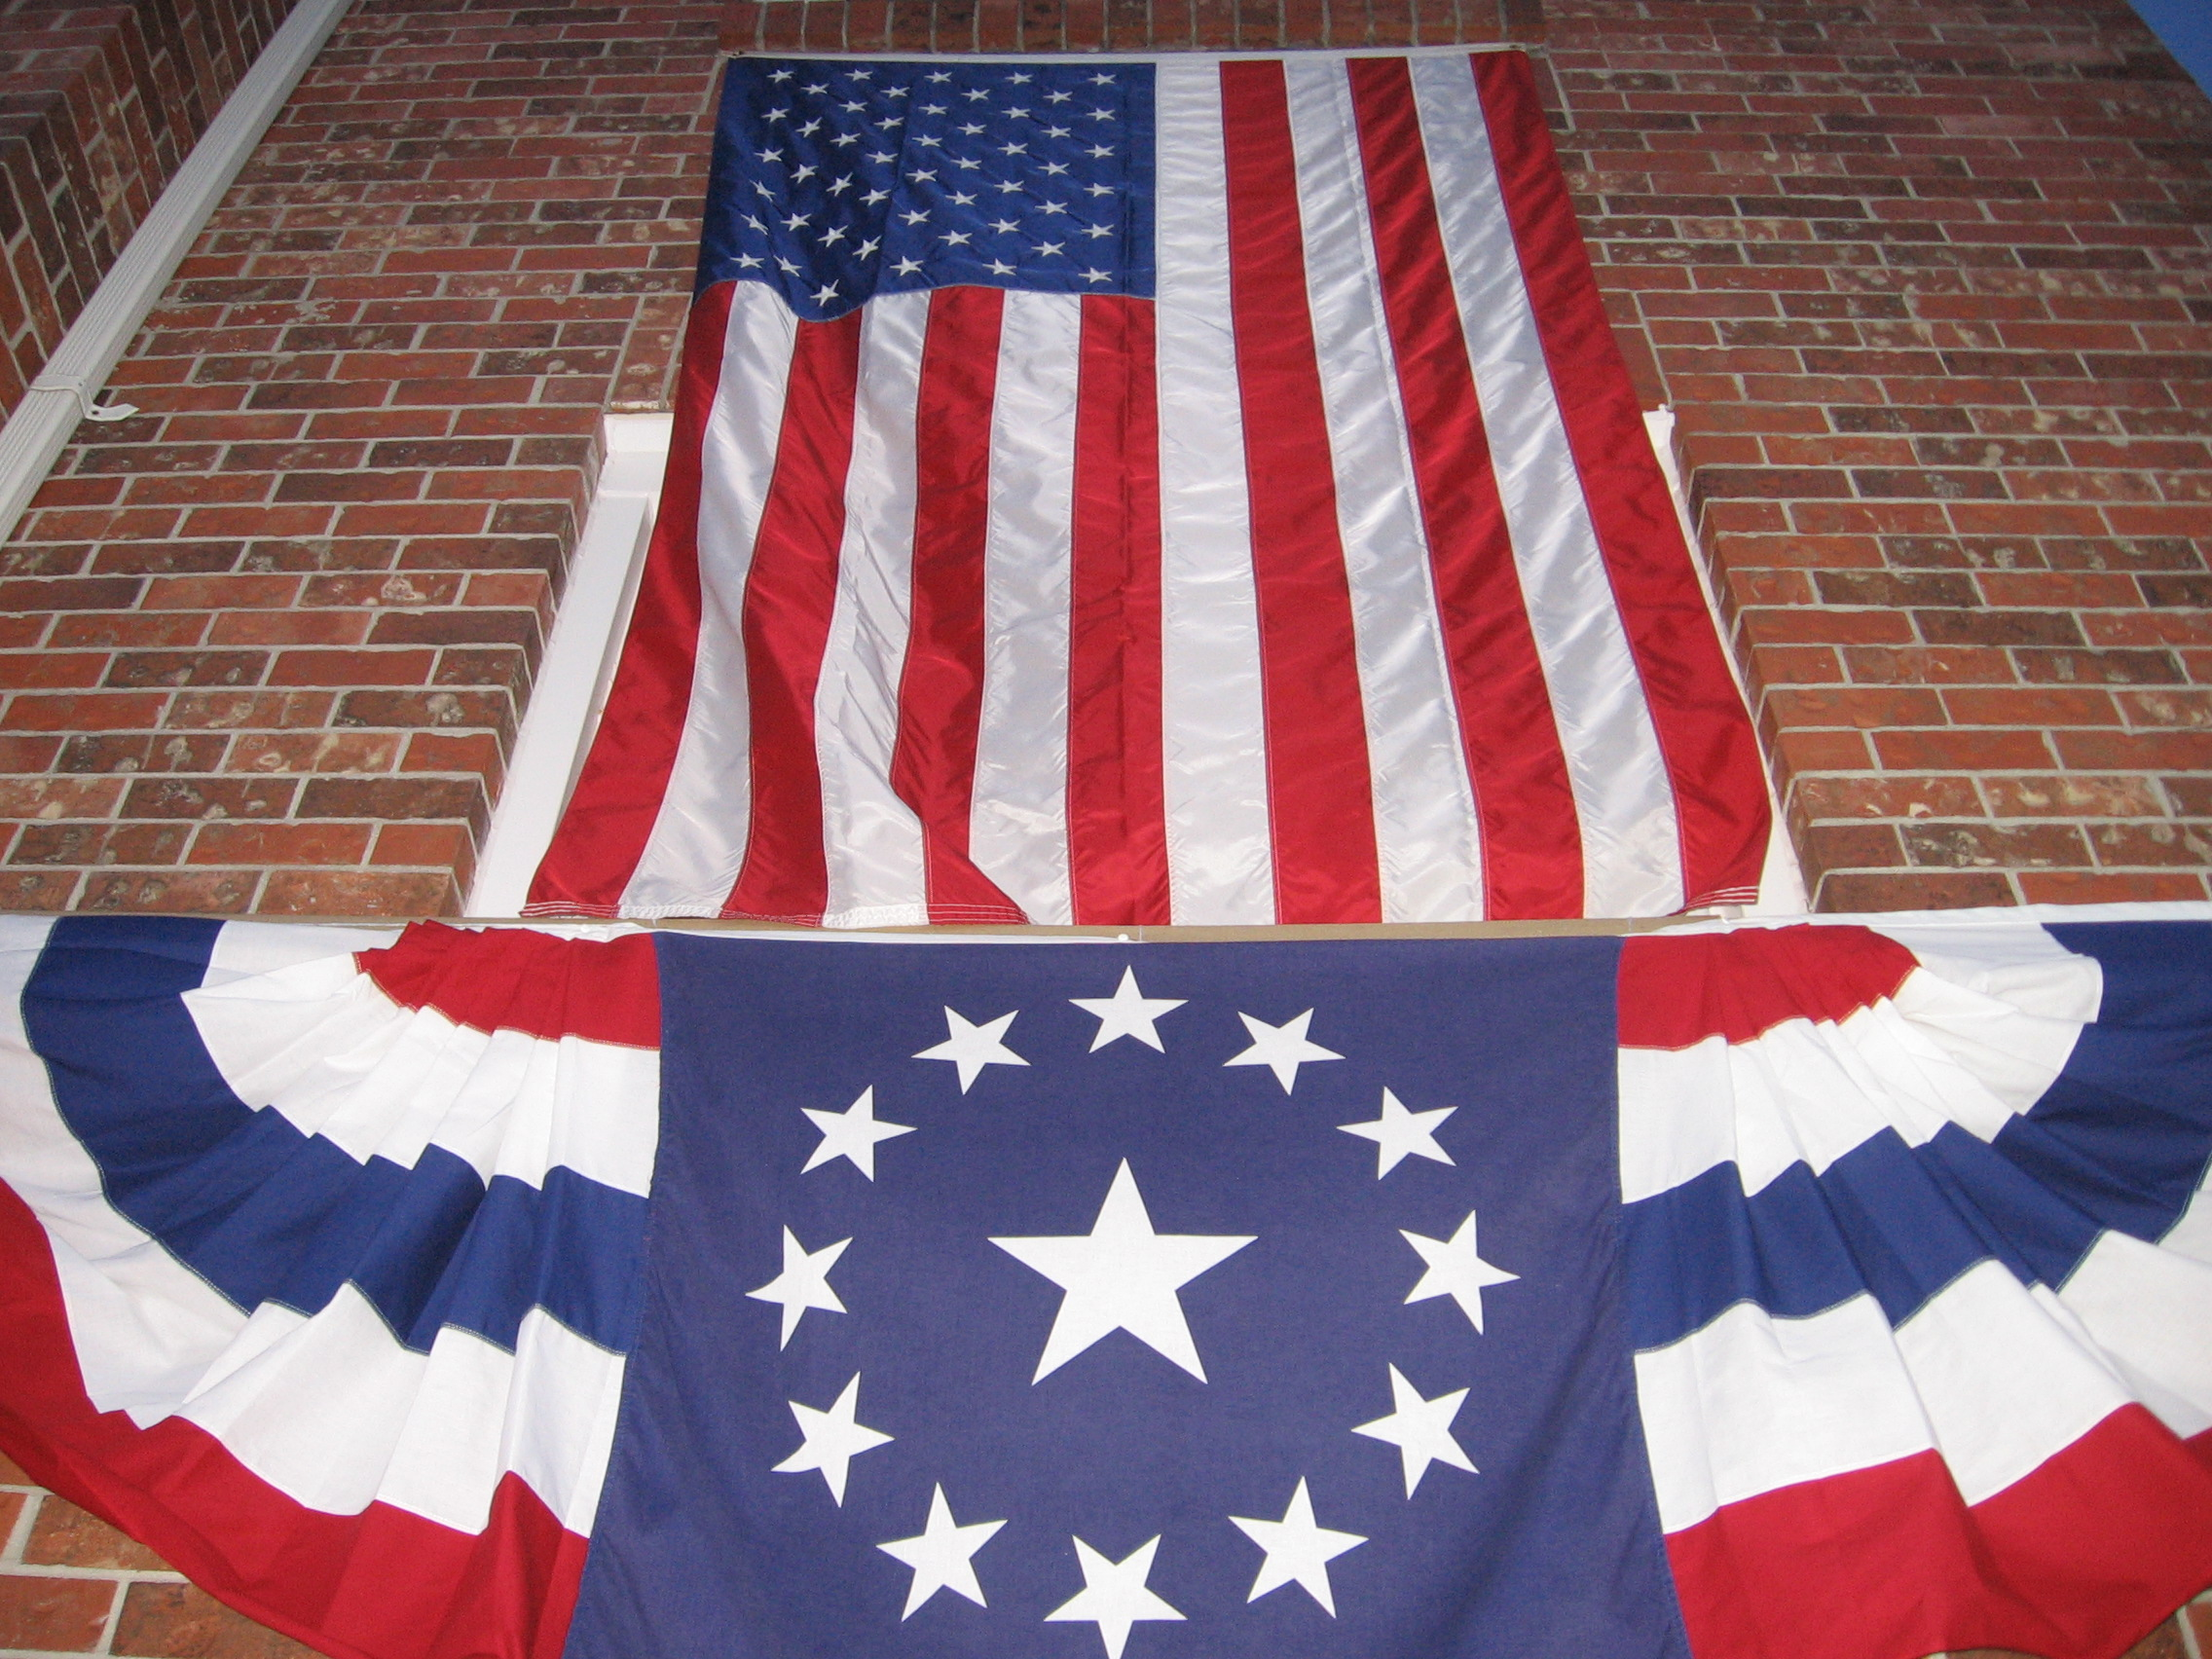 Creative ways to display your U.S. flags. and decorate outdoors